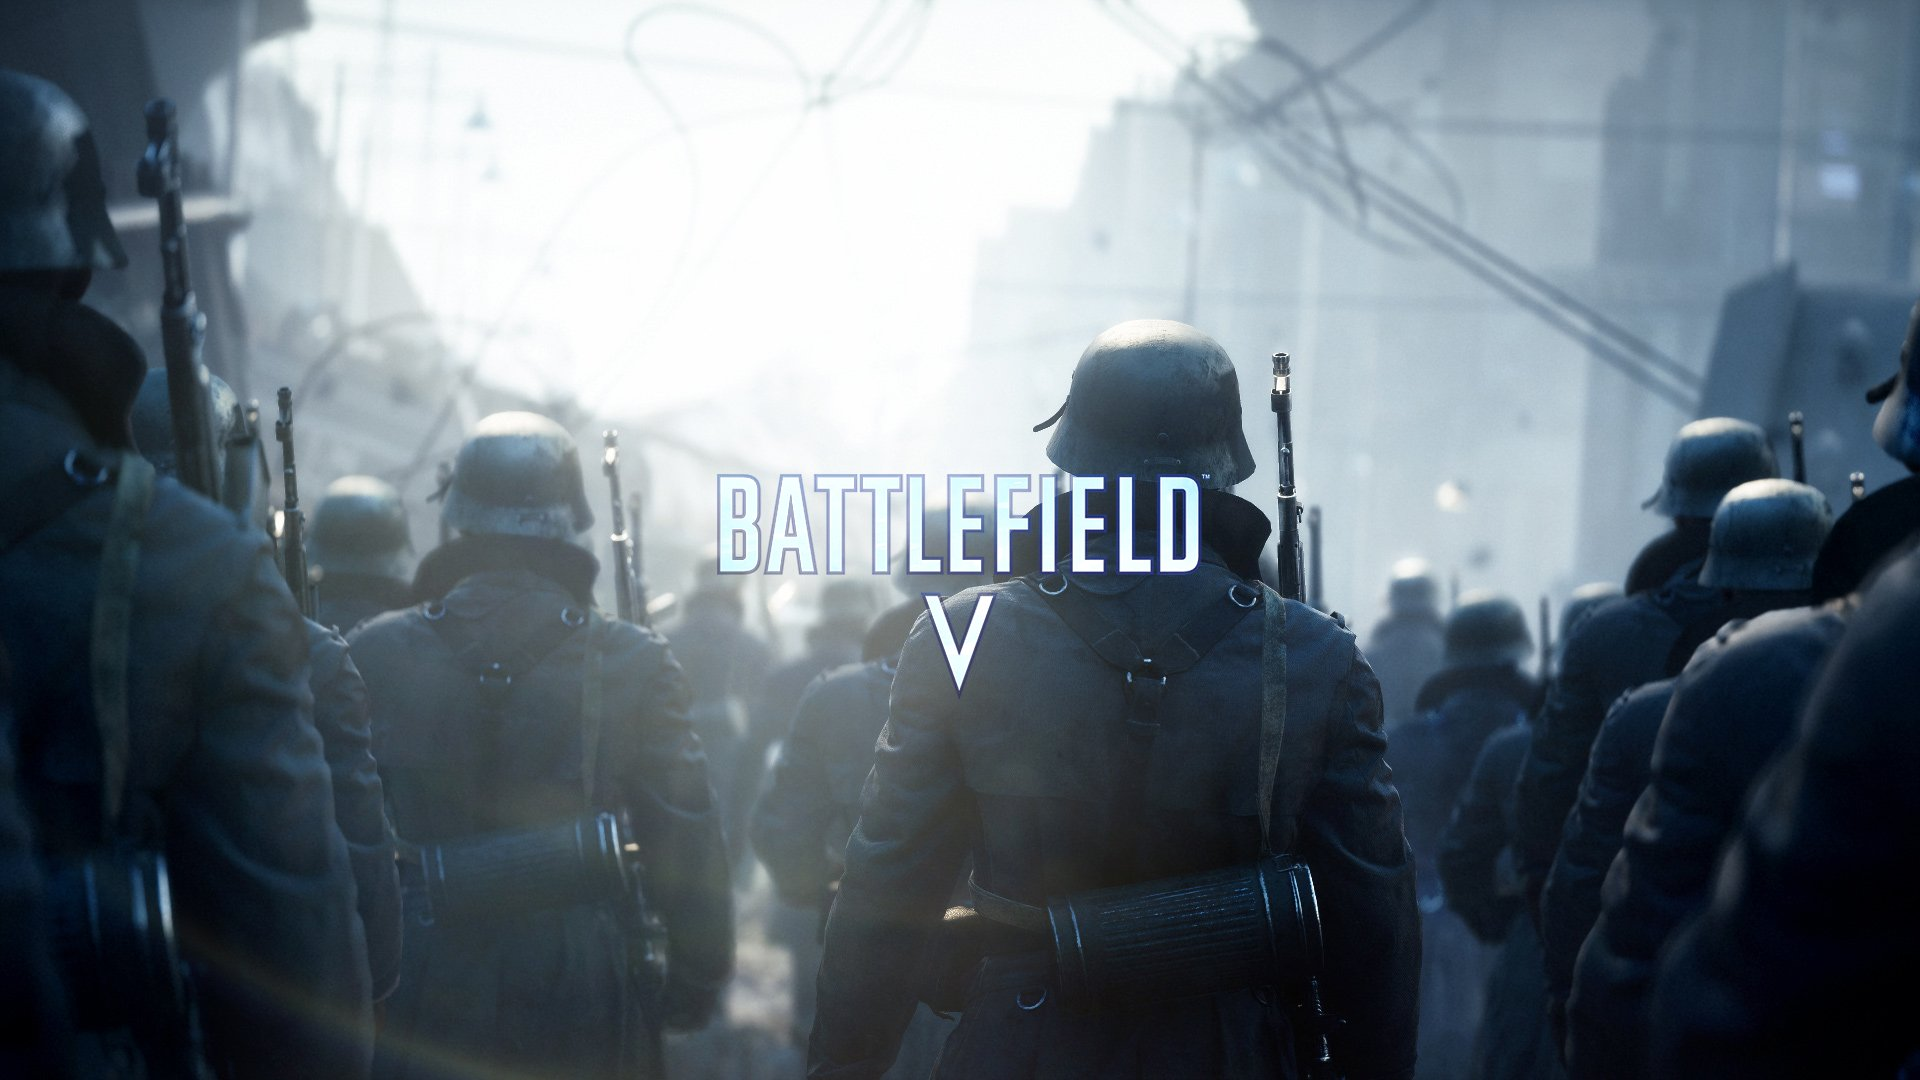 patch correctif battlefield 3 pc